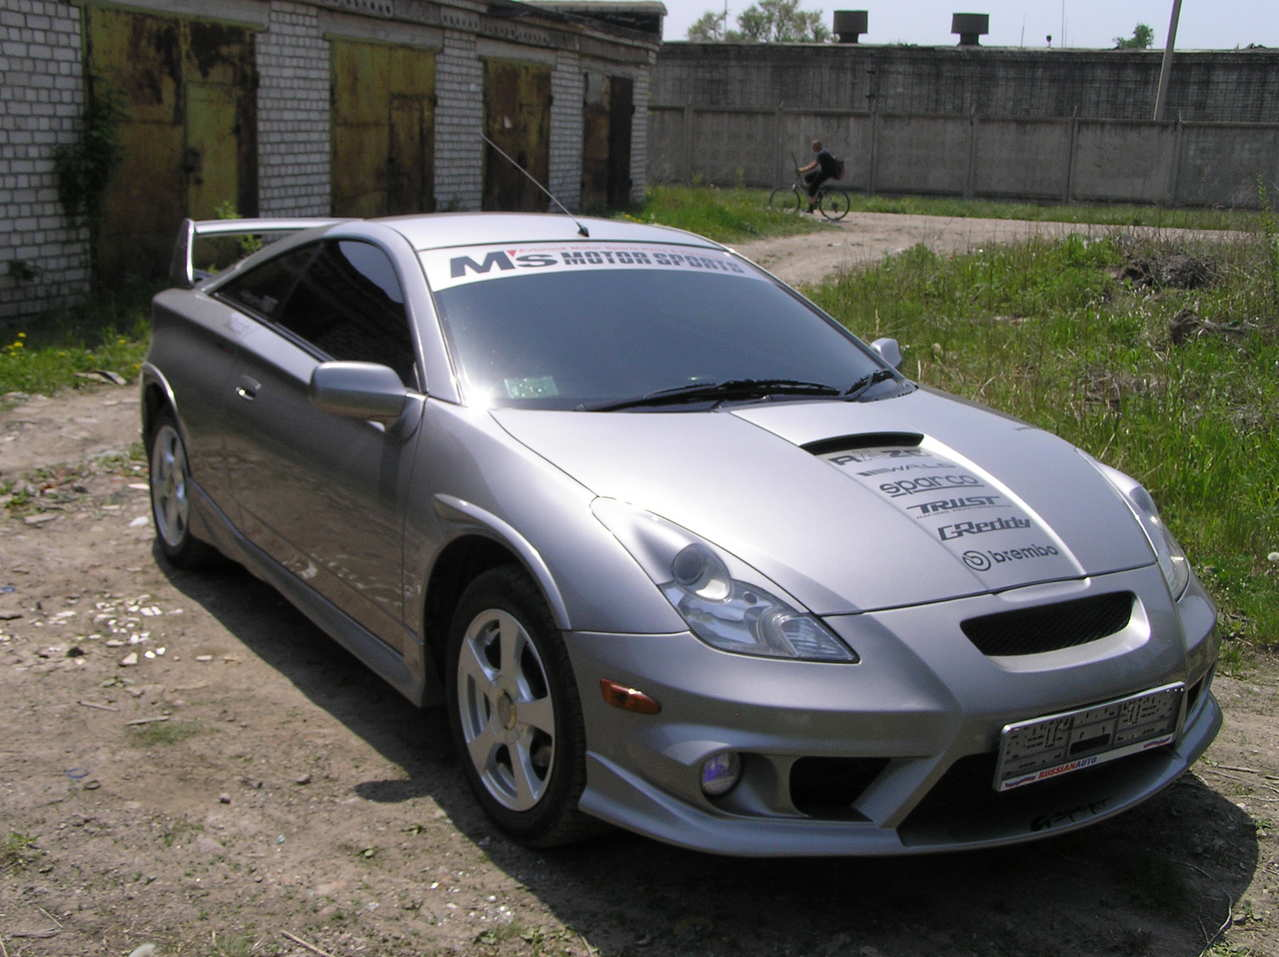 used 2005 toyota celica photos 1800cc gasoline ff manual for sale. Black Bedroom Furniture Sets. Home Design Ideas